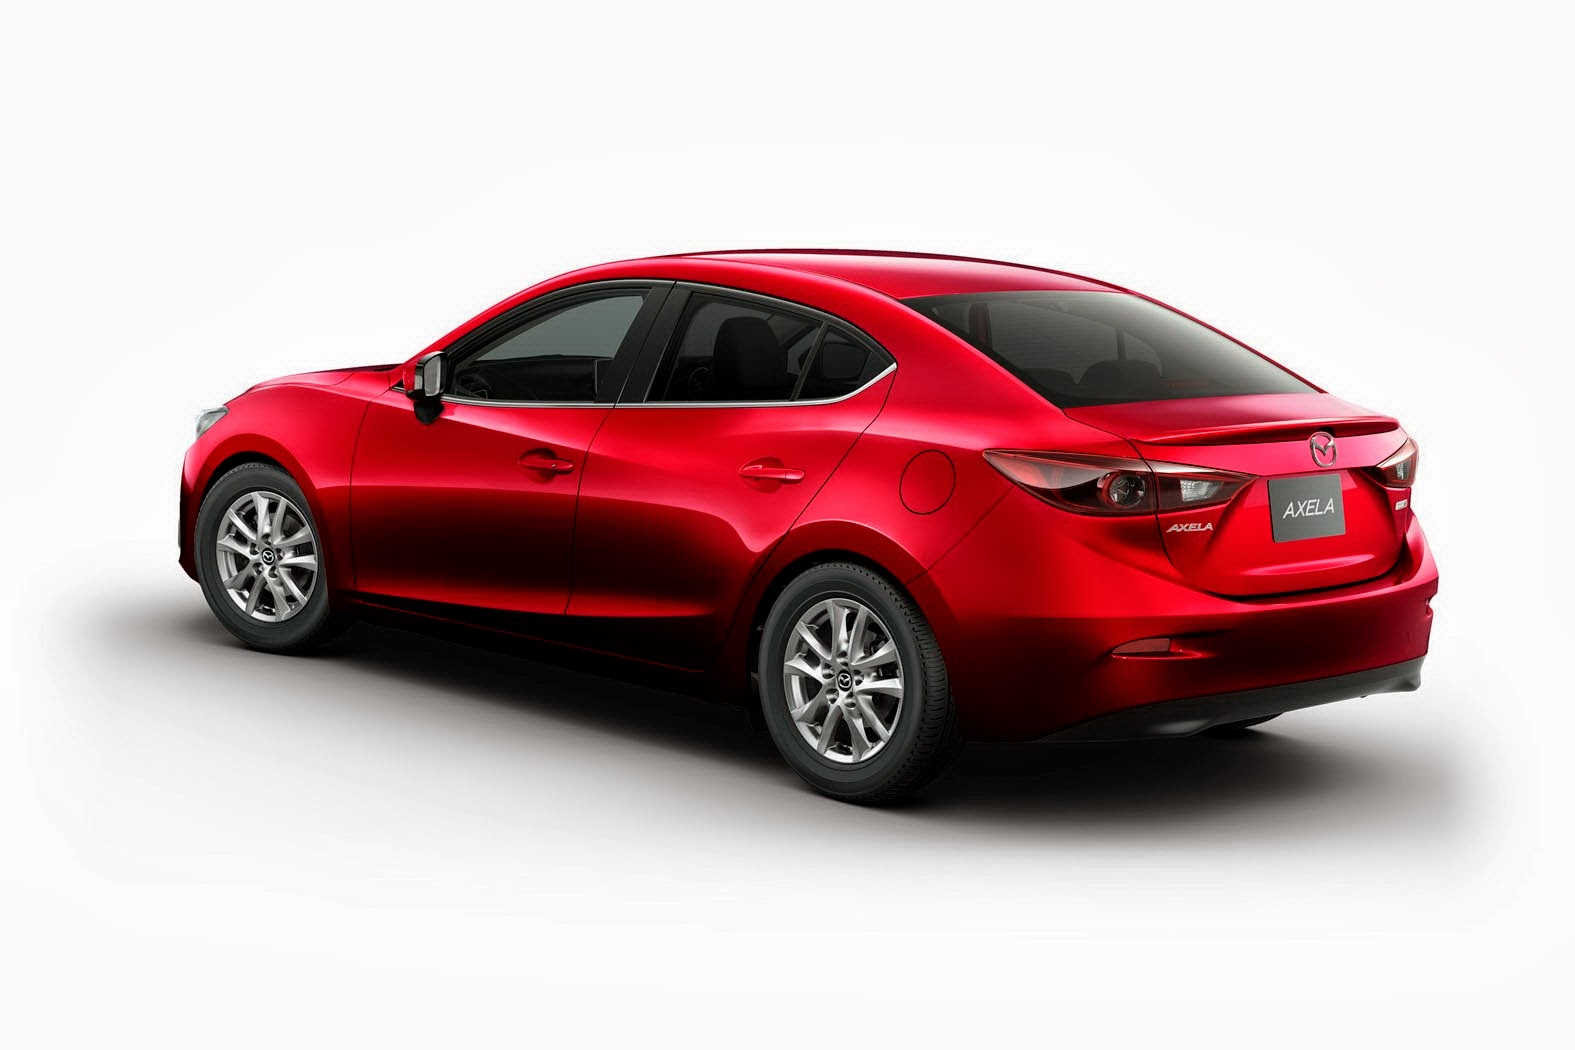 mazda3 goes hybrid as japanese axela model autoevolution. Black Bedroom Furniture Sets. Home Design Ideas